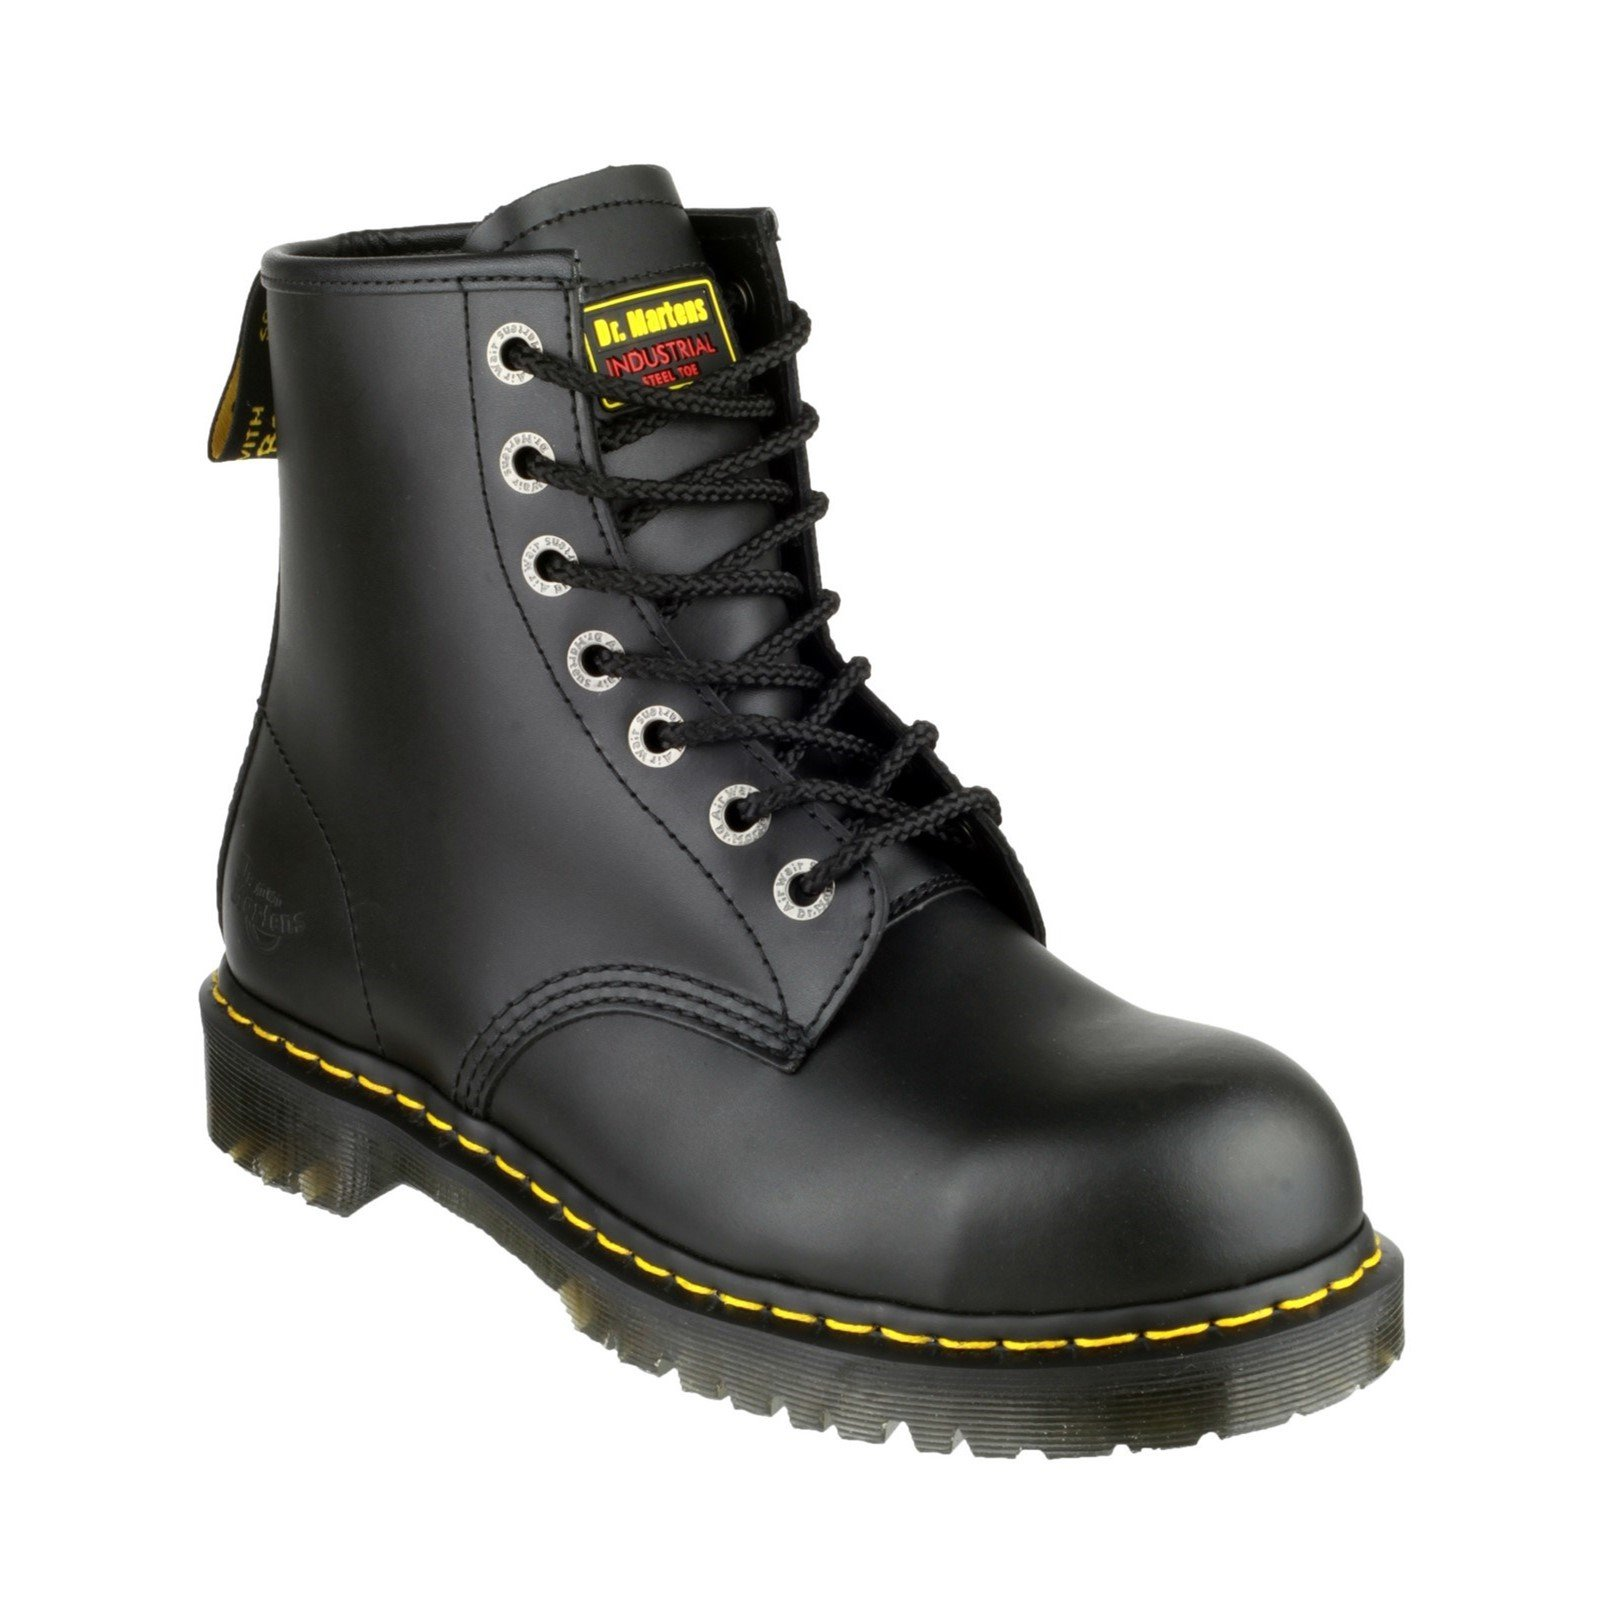 Dr Martens Unisex Icon Lace up Safety Boot Black 19498 - Black 3